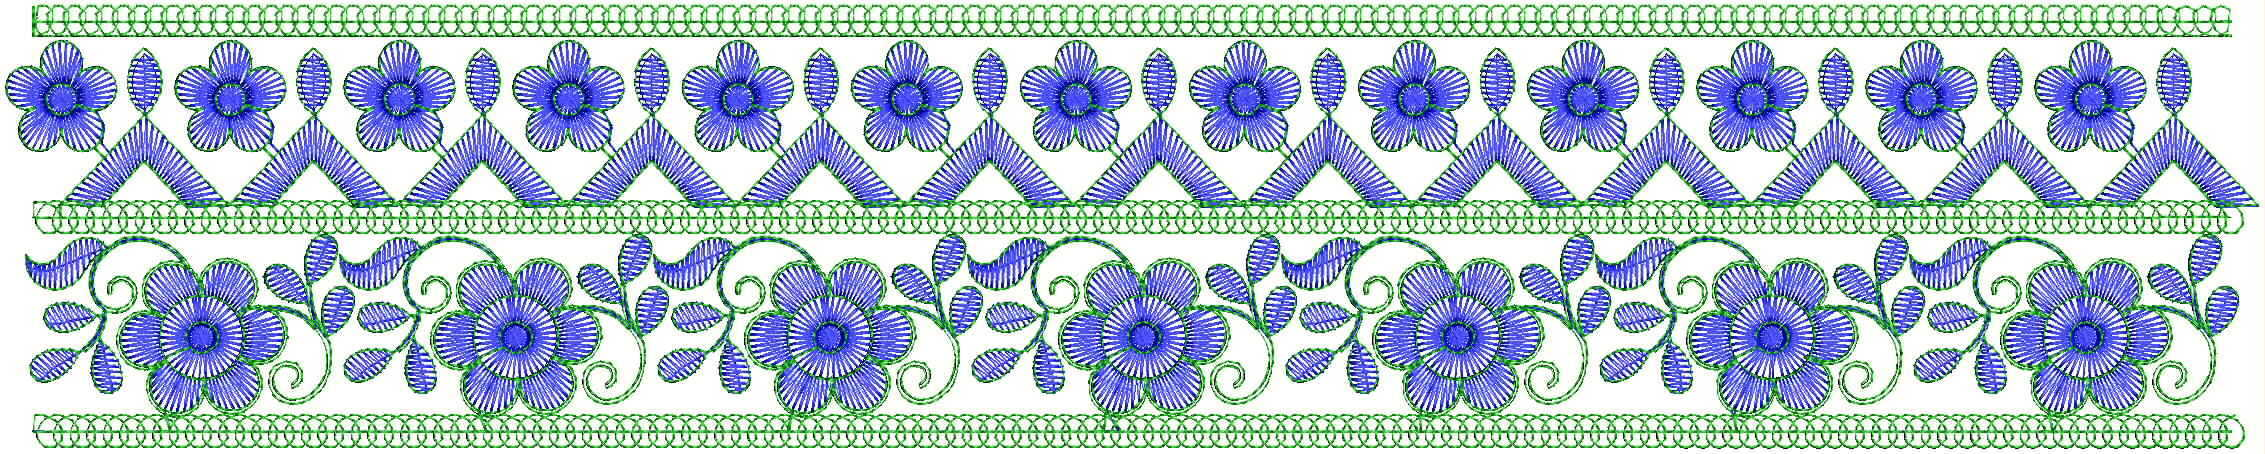 Awesome lace/border Embroidery Design